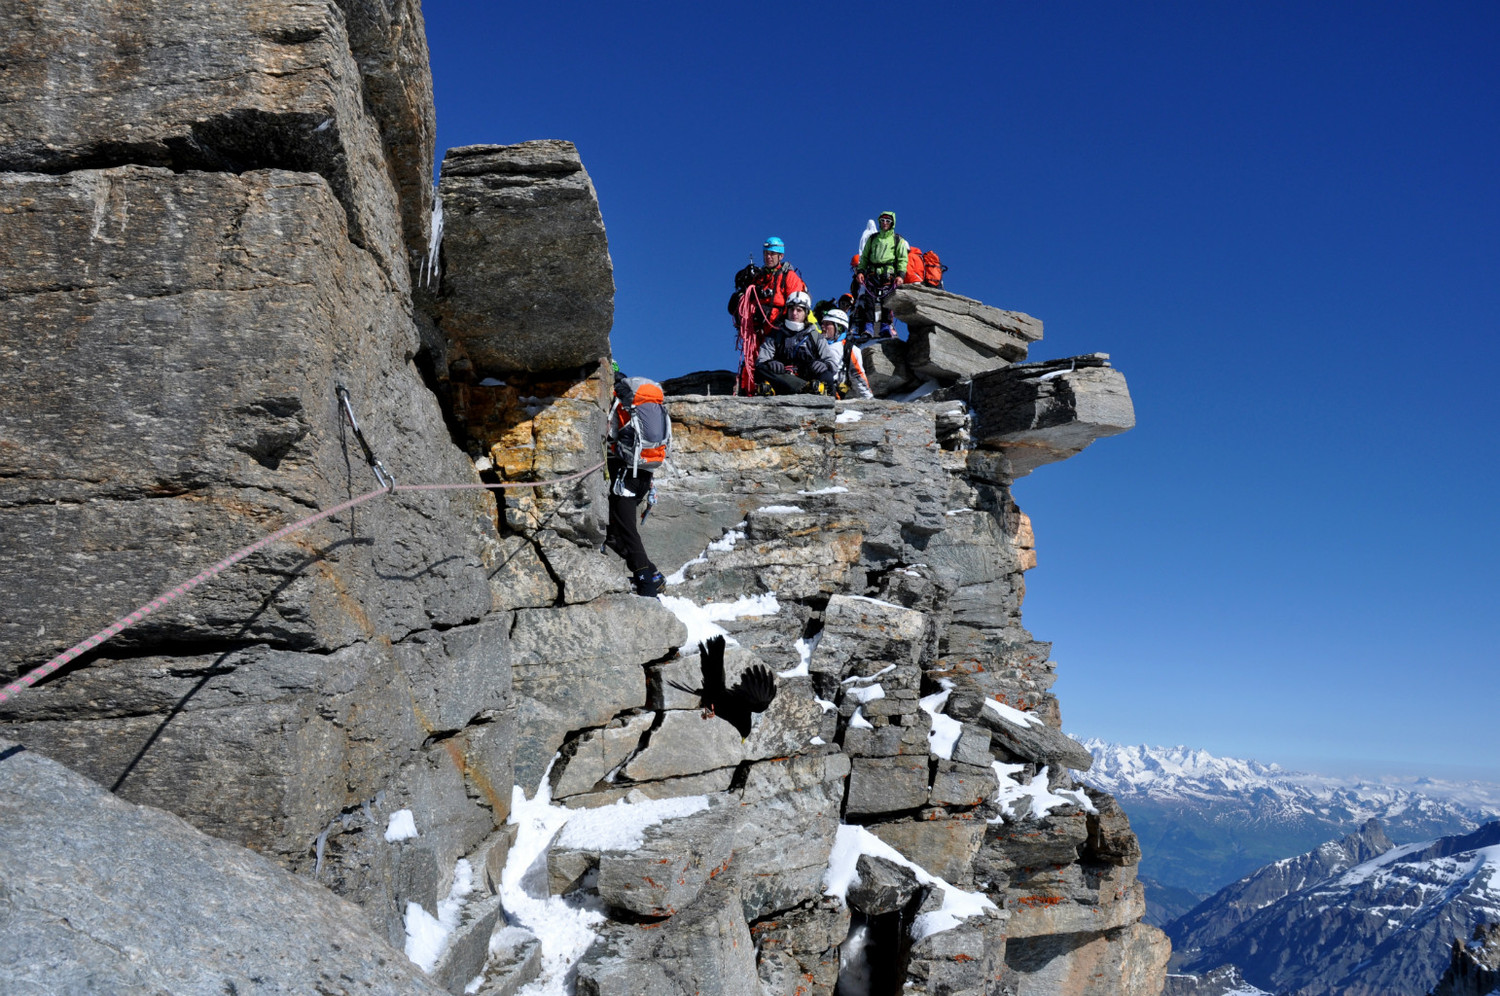 Gran Paradiso - Via normale : ... the joy of reaching the Paradise (!) keeps most people happy, friendly and polite though !